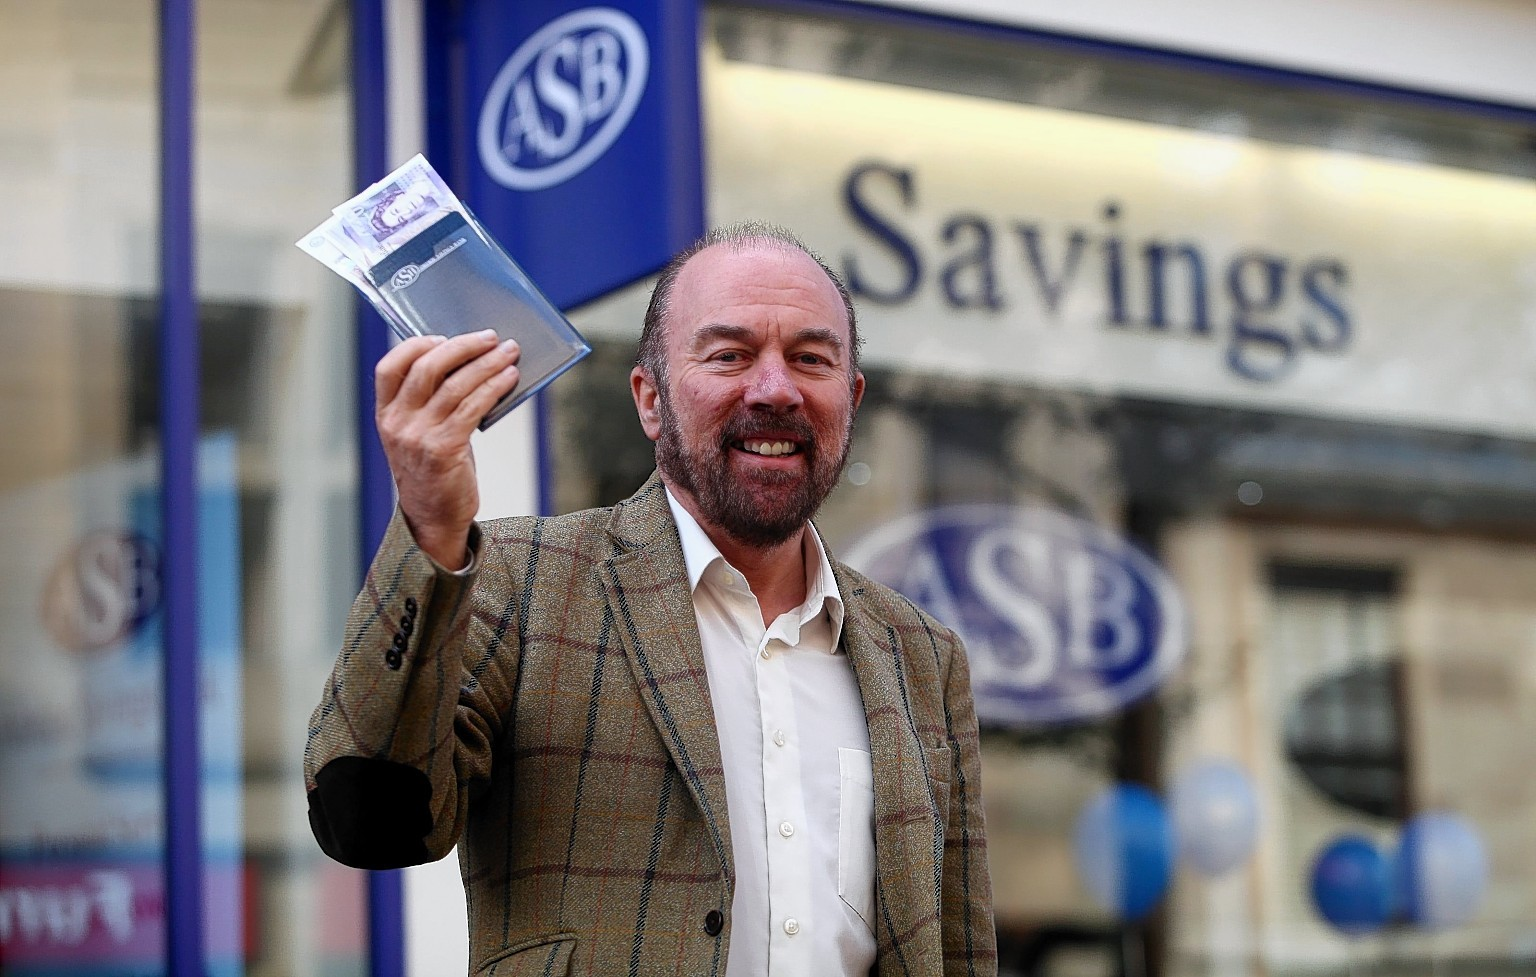 A file photo of Brian Souter opening the new Airdire Savings Bank in Falkirk, Stirlingshire.